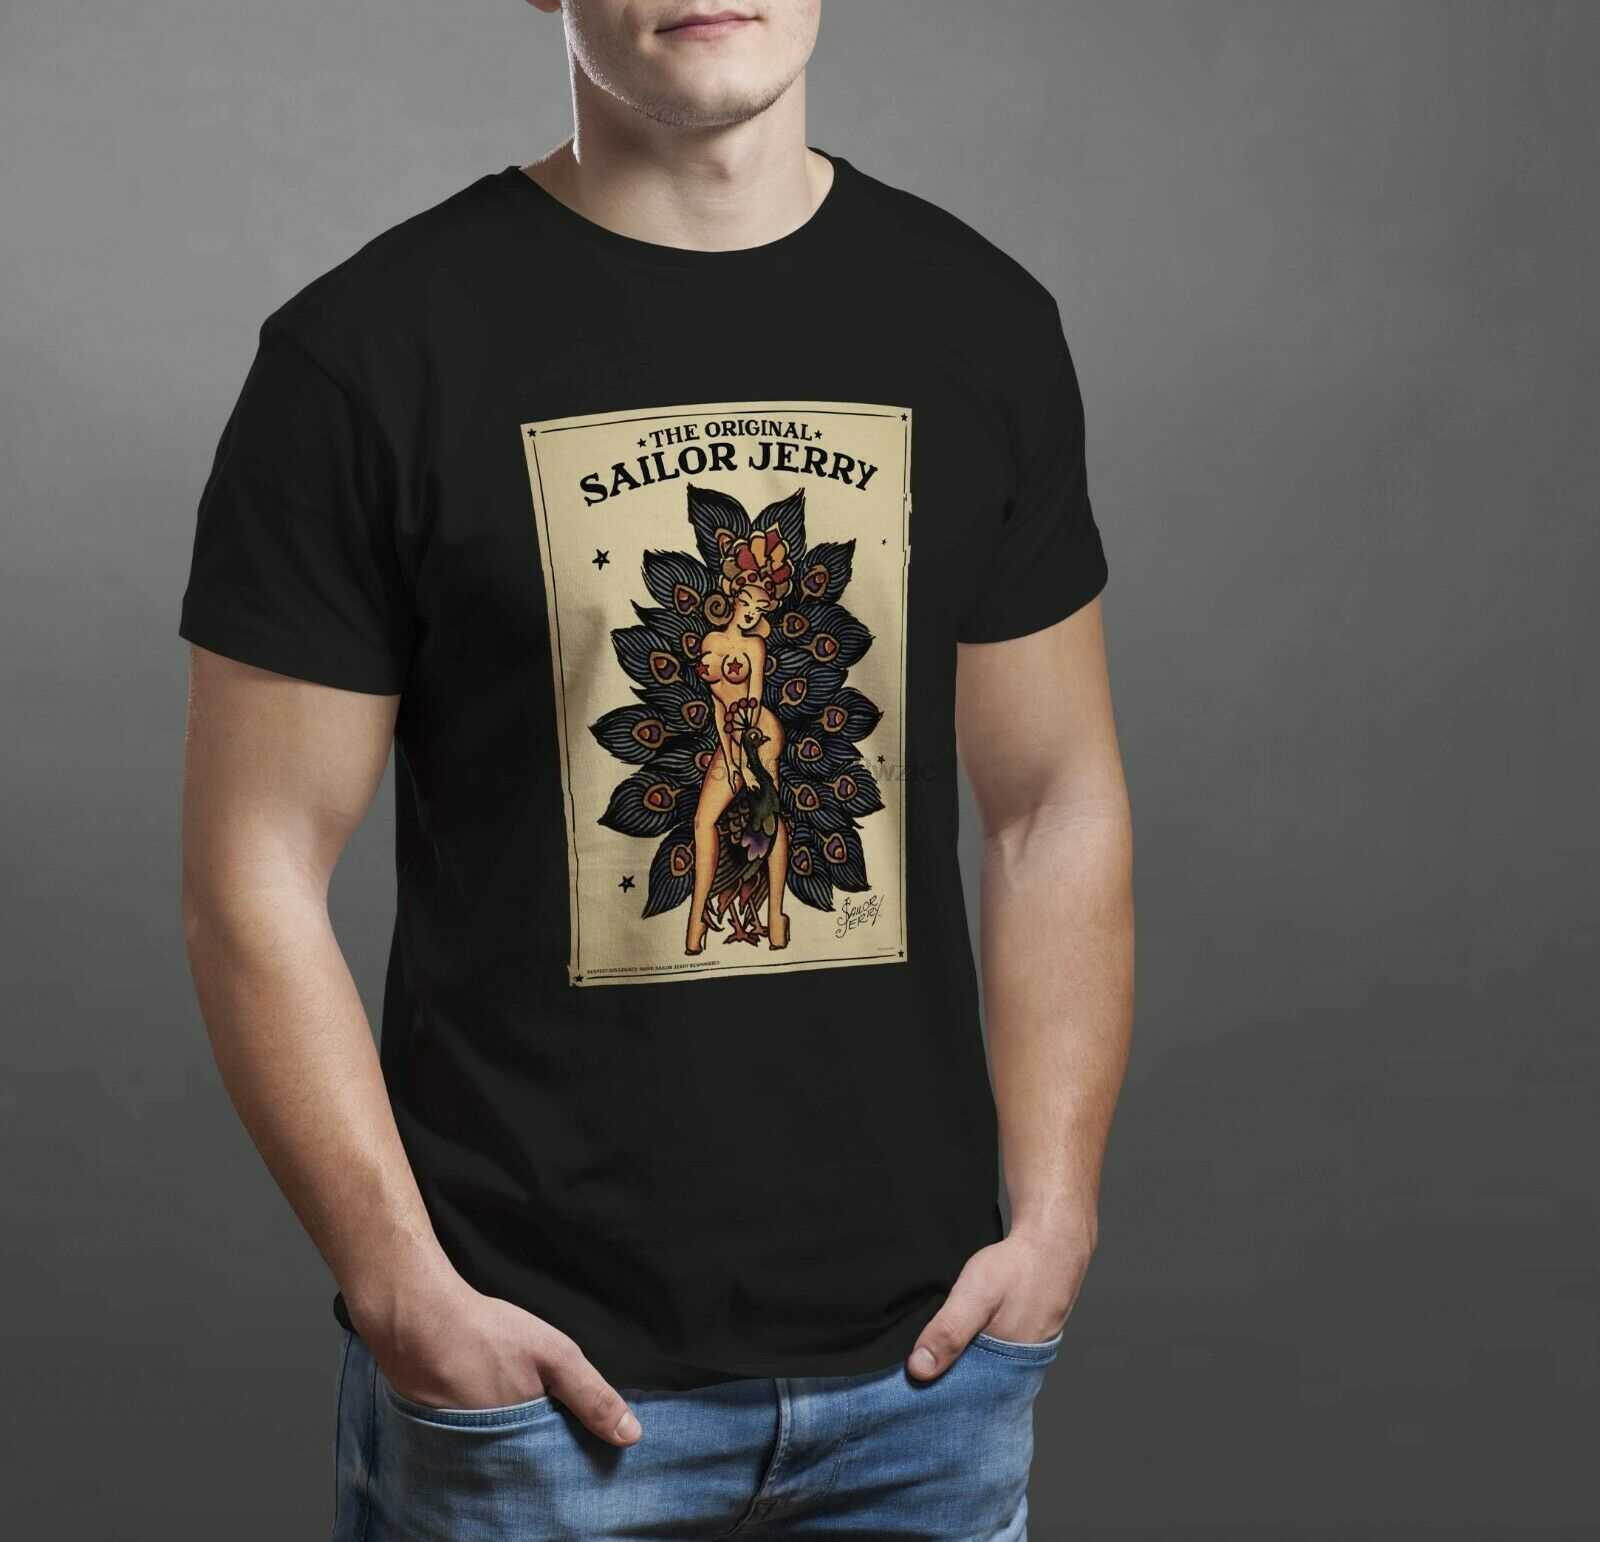 Sailor Jerry Spiced Rum Tato Terinspirasi Lady Tshirt T Shirt Semua Ukuran 131